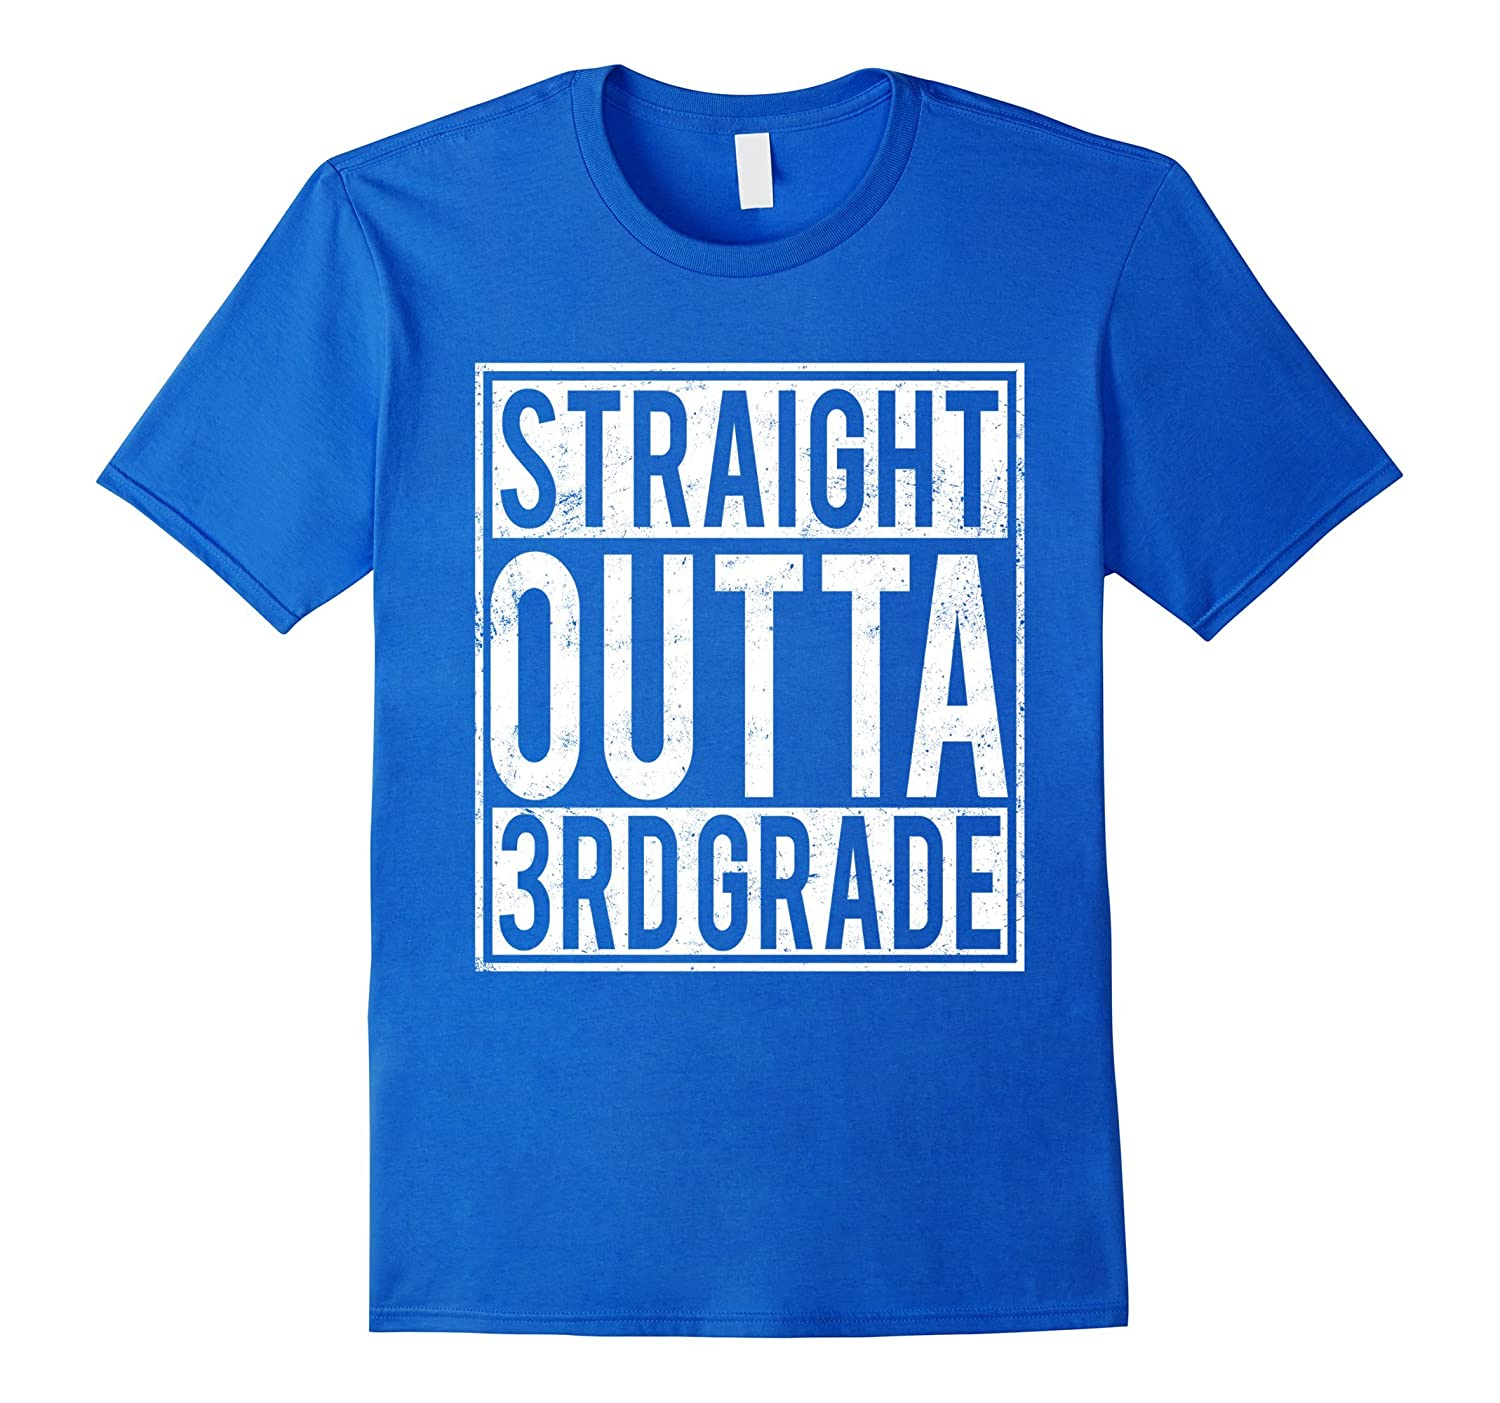 Straight Outta 3rd Grade T-shirt Funny High School-CD